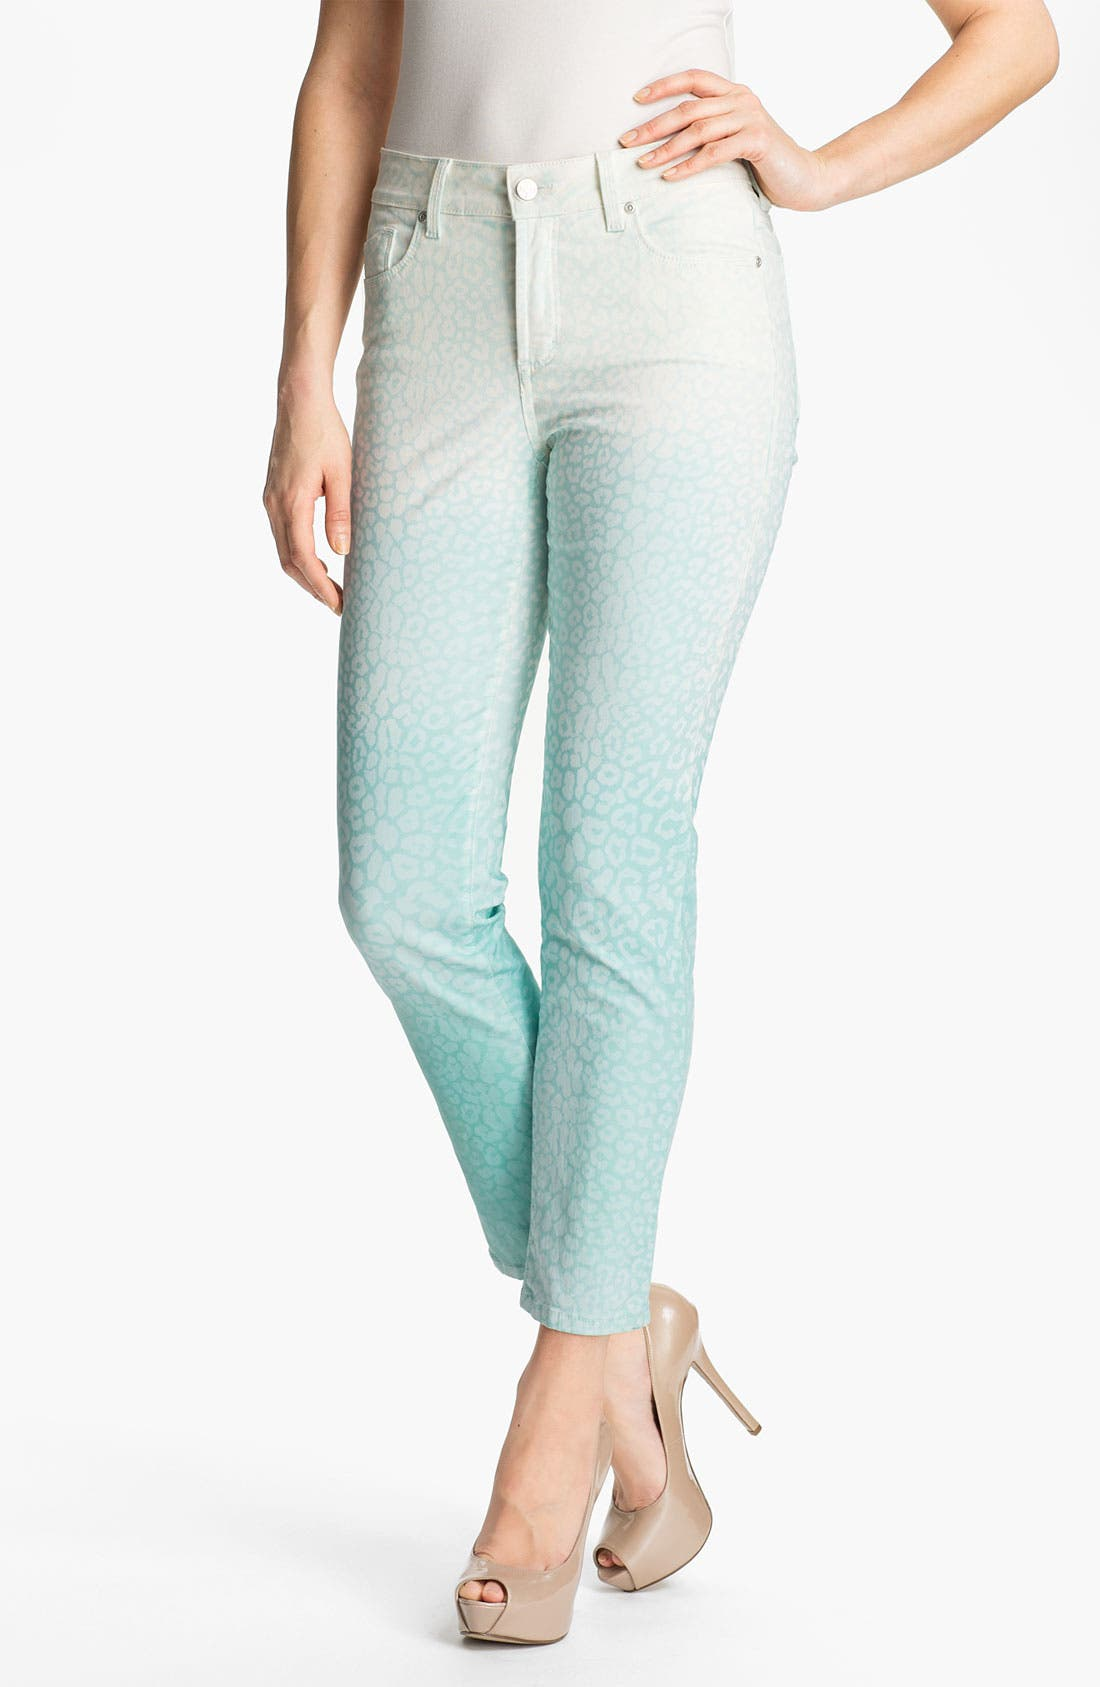 Alternate Image 1 Selected - NYDJ 'Alisha - Chevy' Skinny Stretch Ankle Jeans